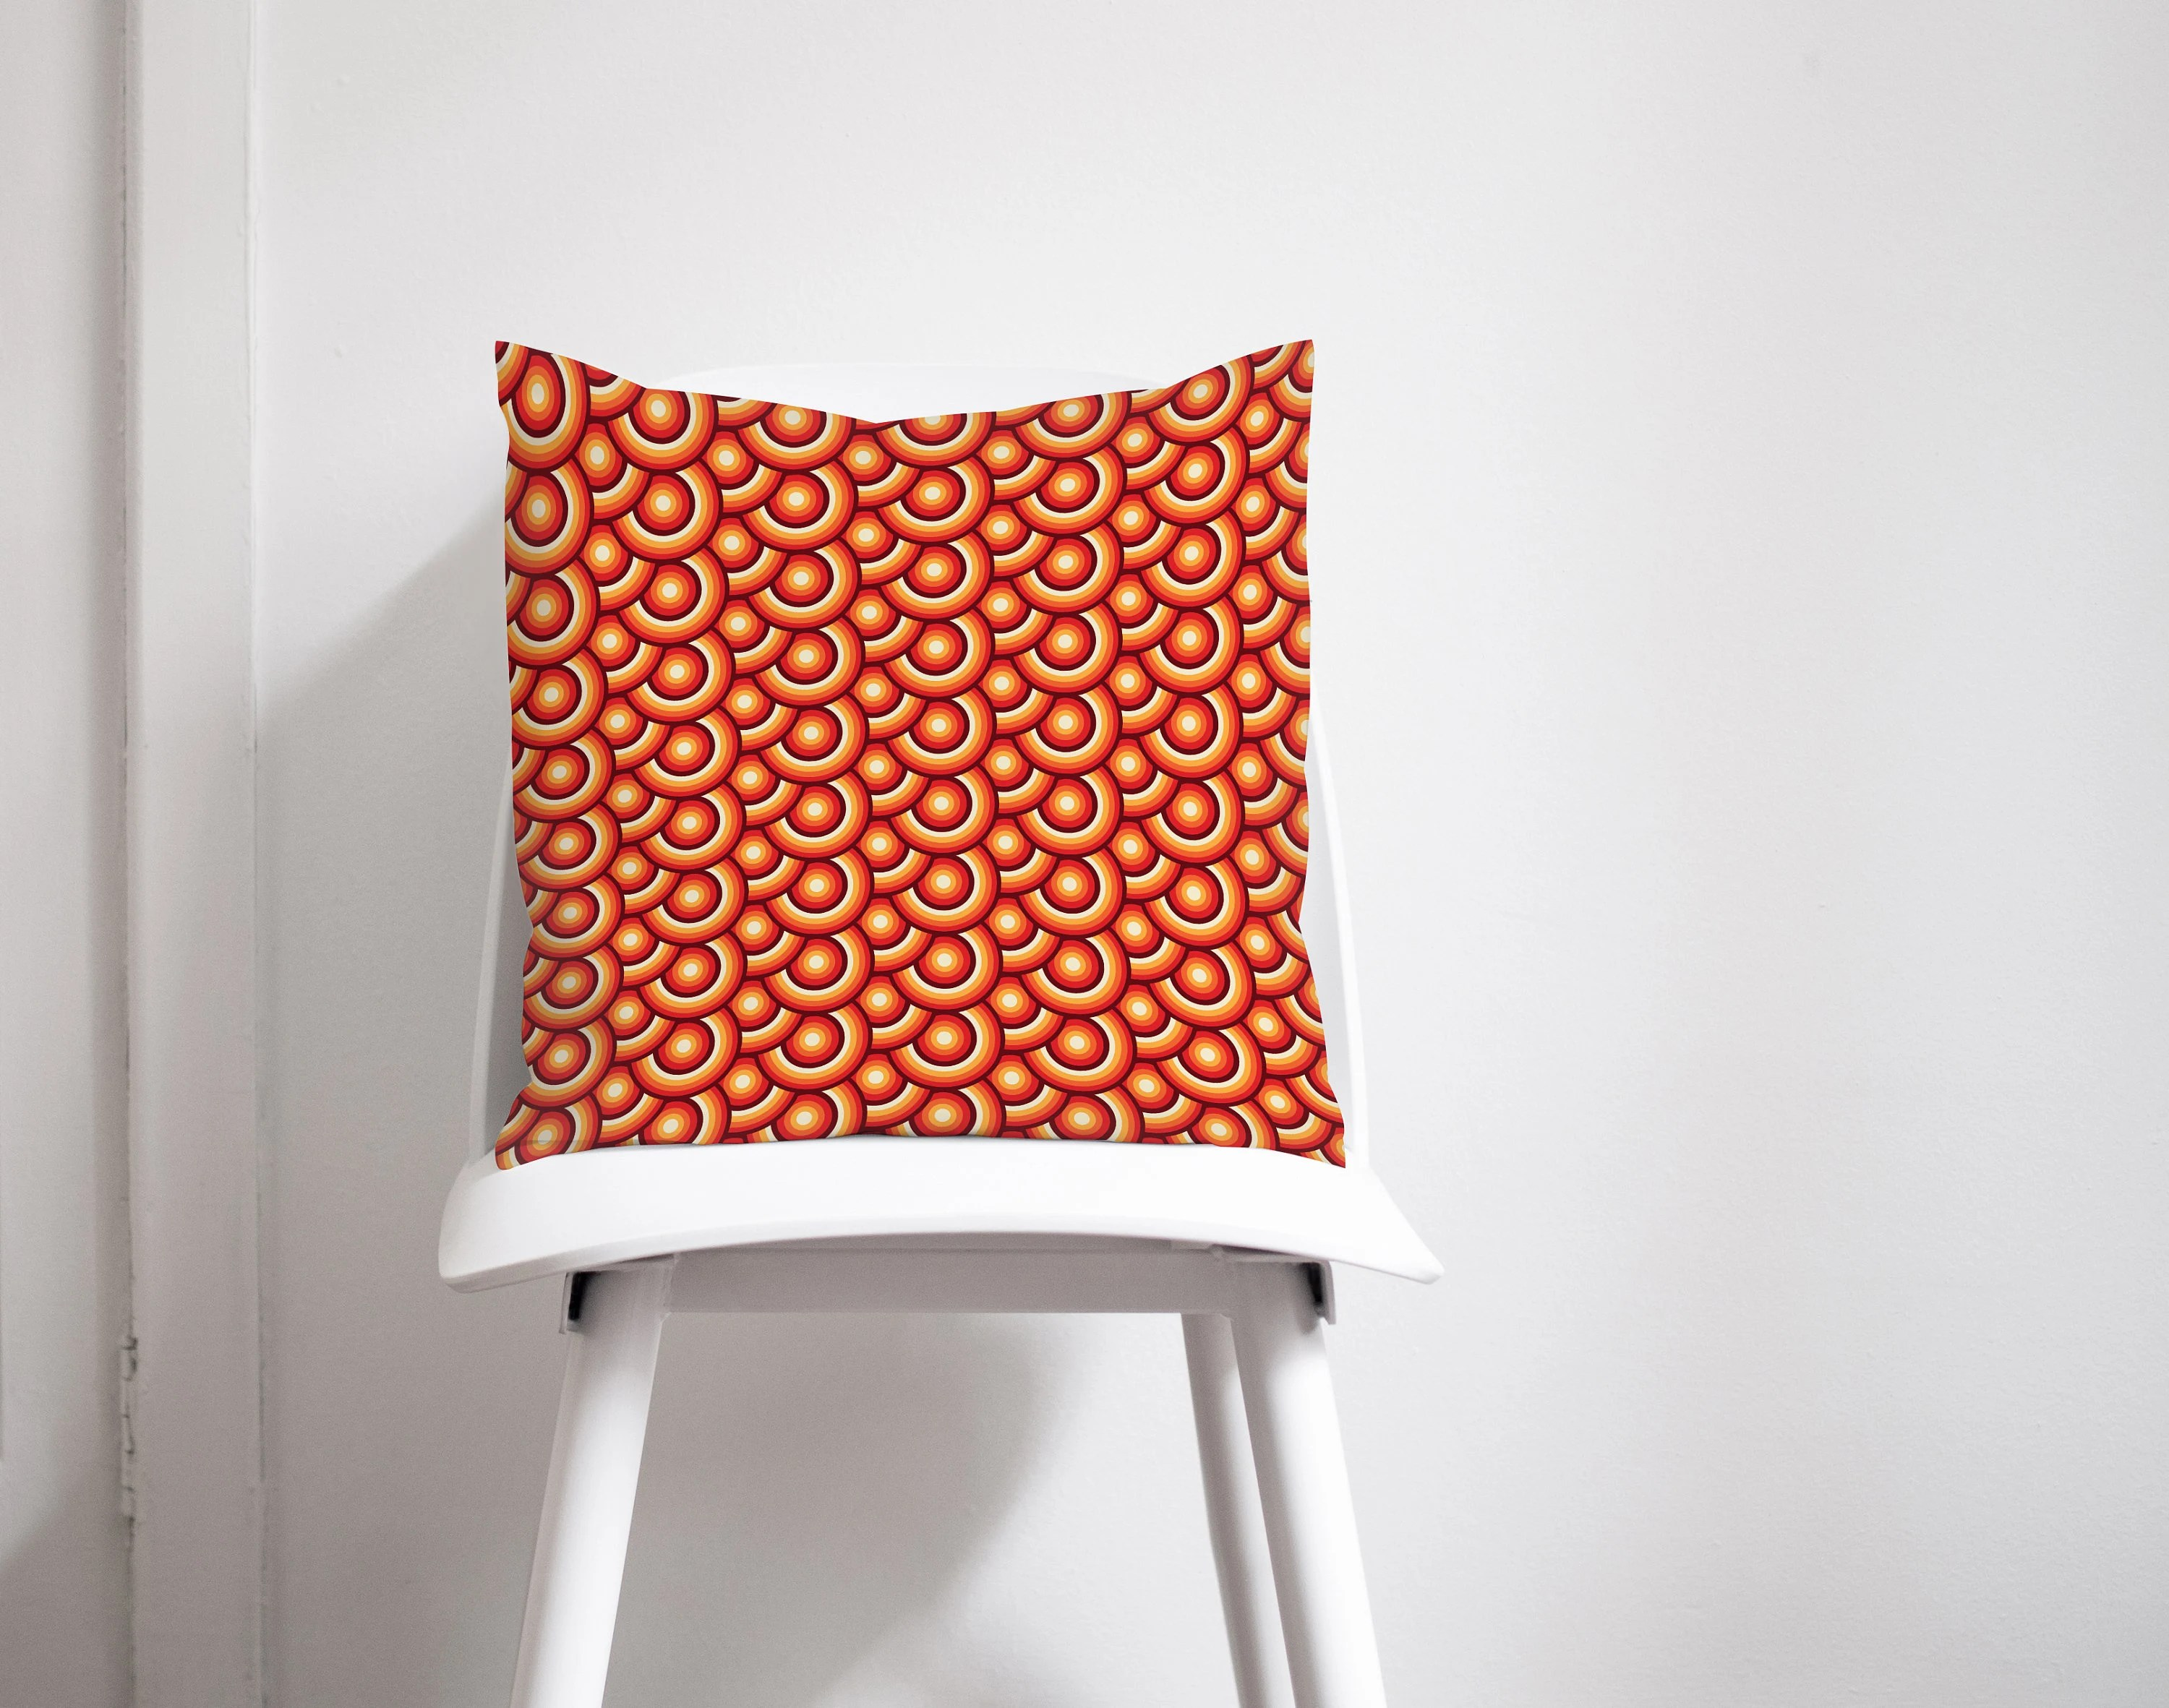 Retro Cushions Orange Cushion Retro Home Decor Mid Century Cushion Orange Throw Pillow Retro Cushions Orange Home Decor Geometric Home Decor Cushion